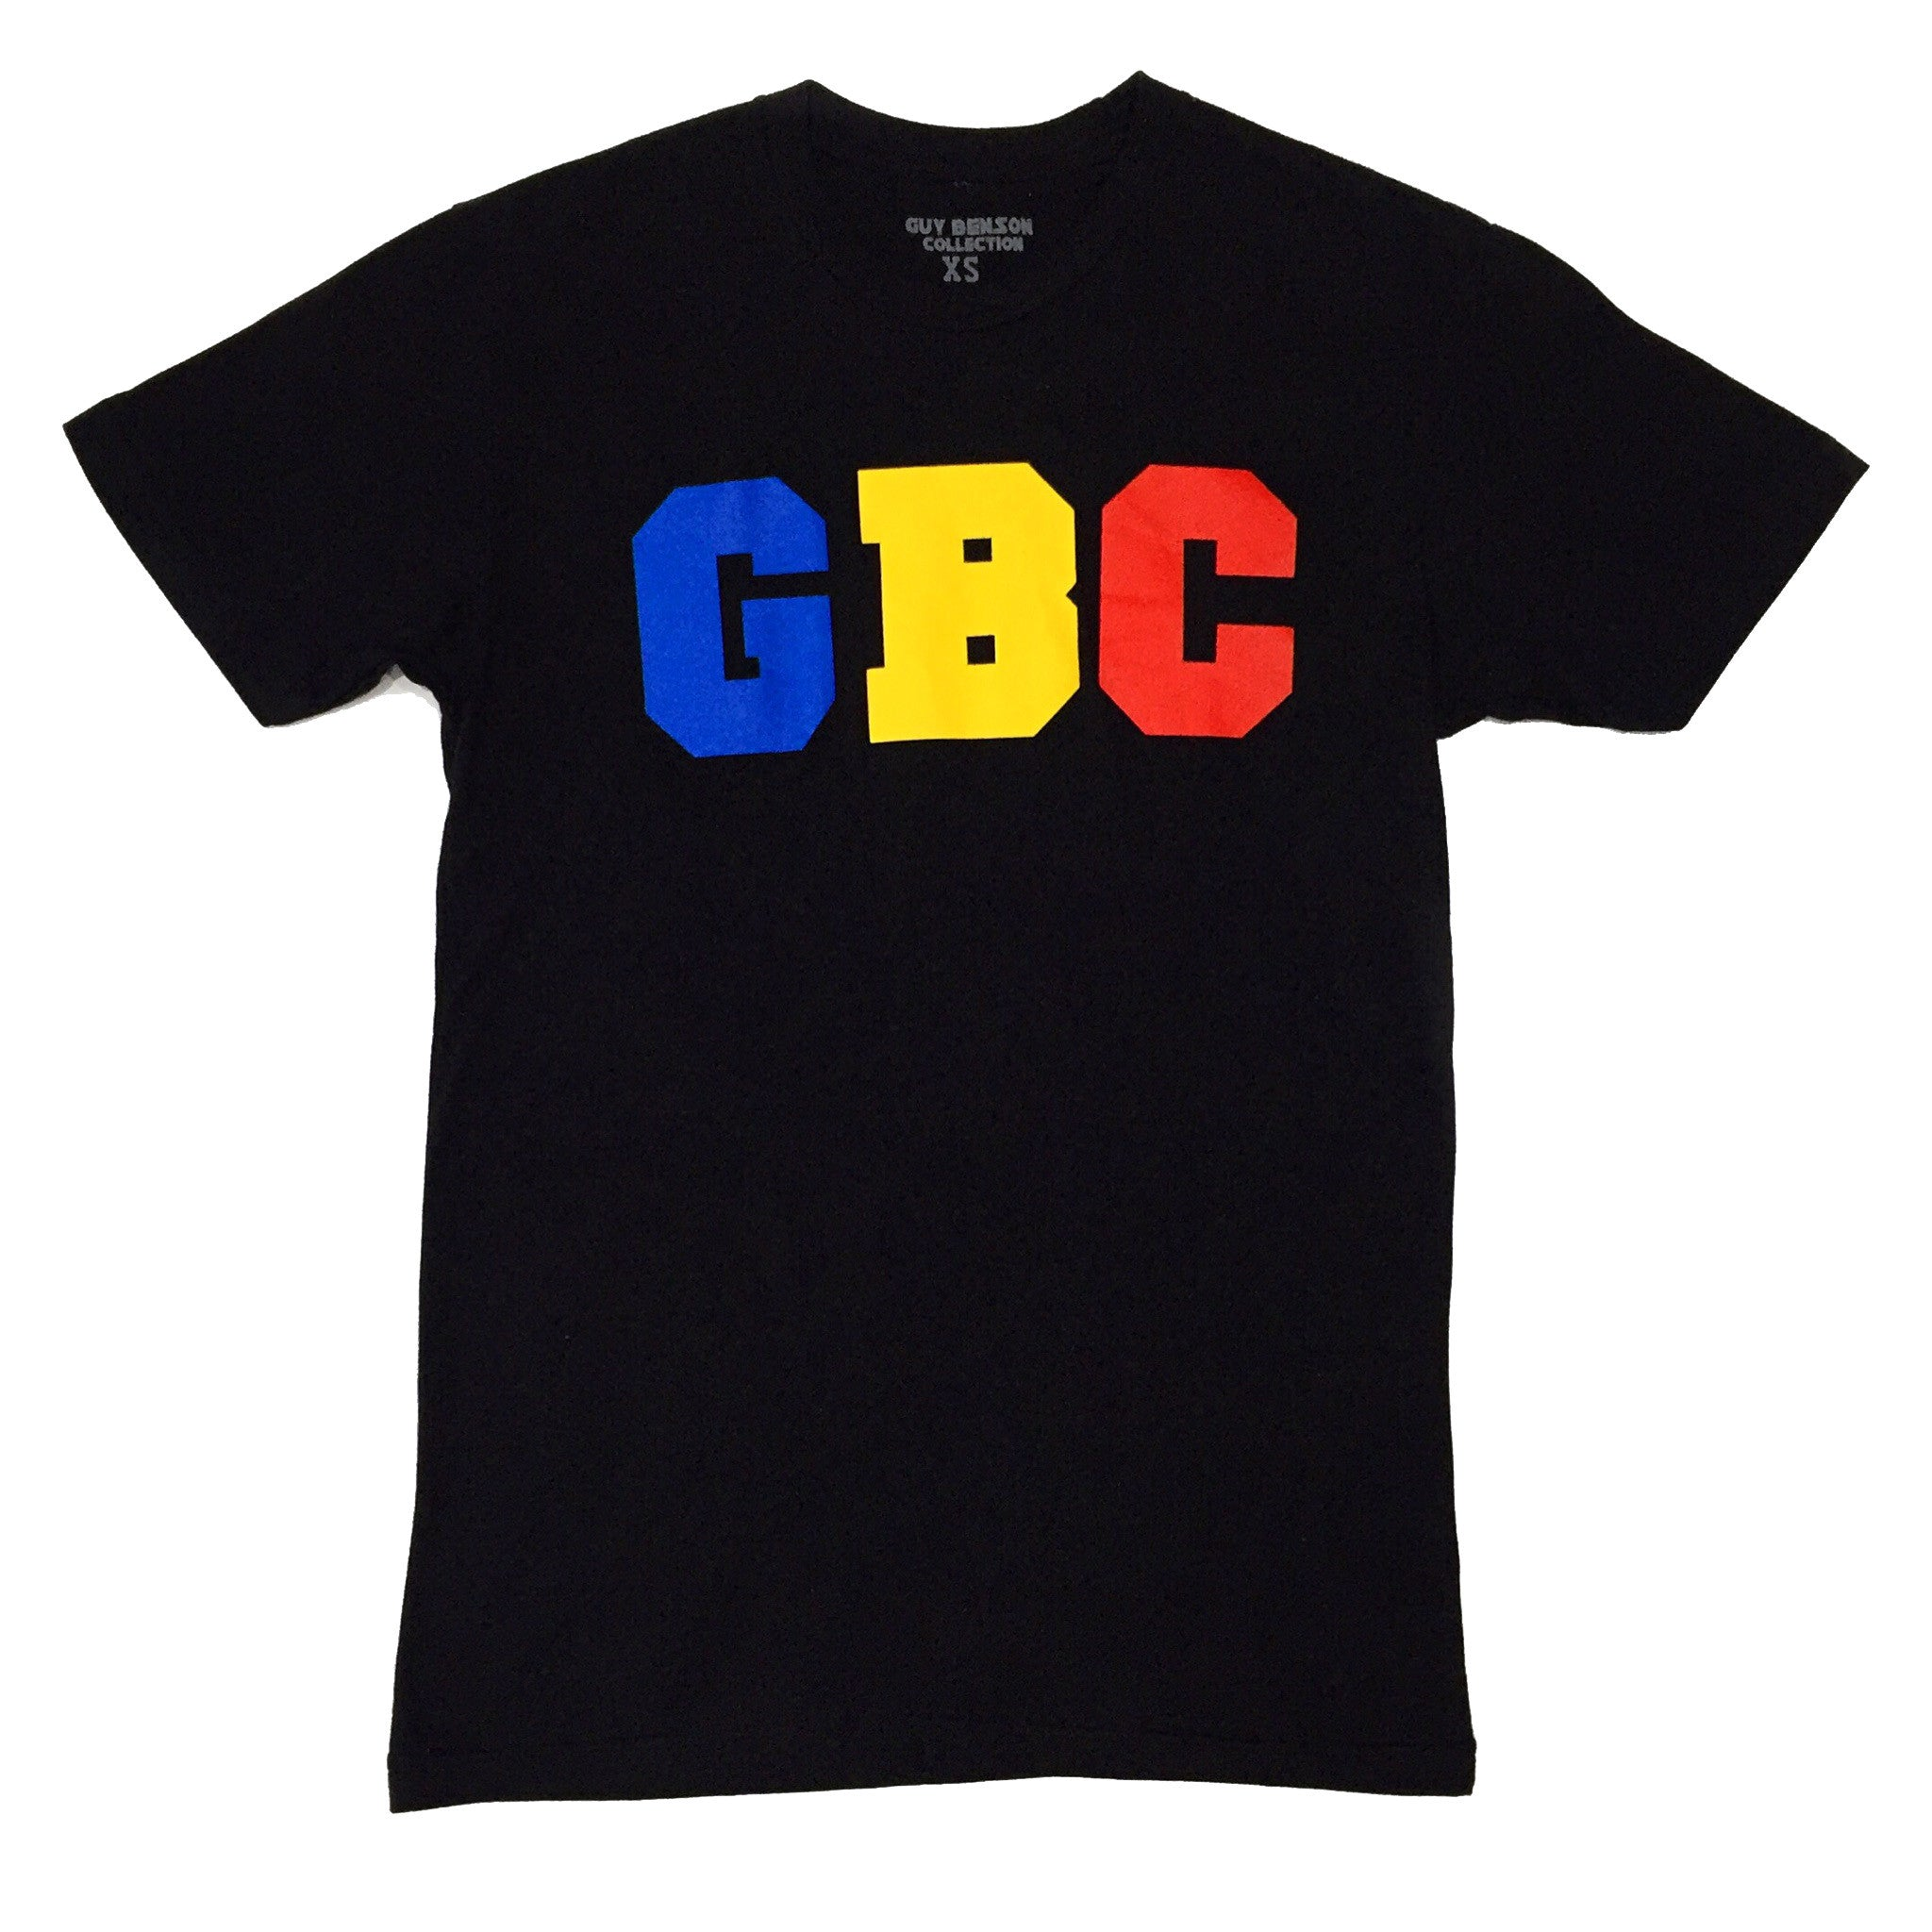 "Guy Benson Collection ""GBC"" logo tee - Black/Blue/Yellow/Red"